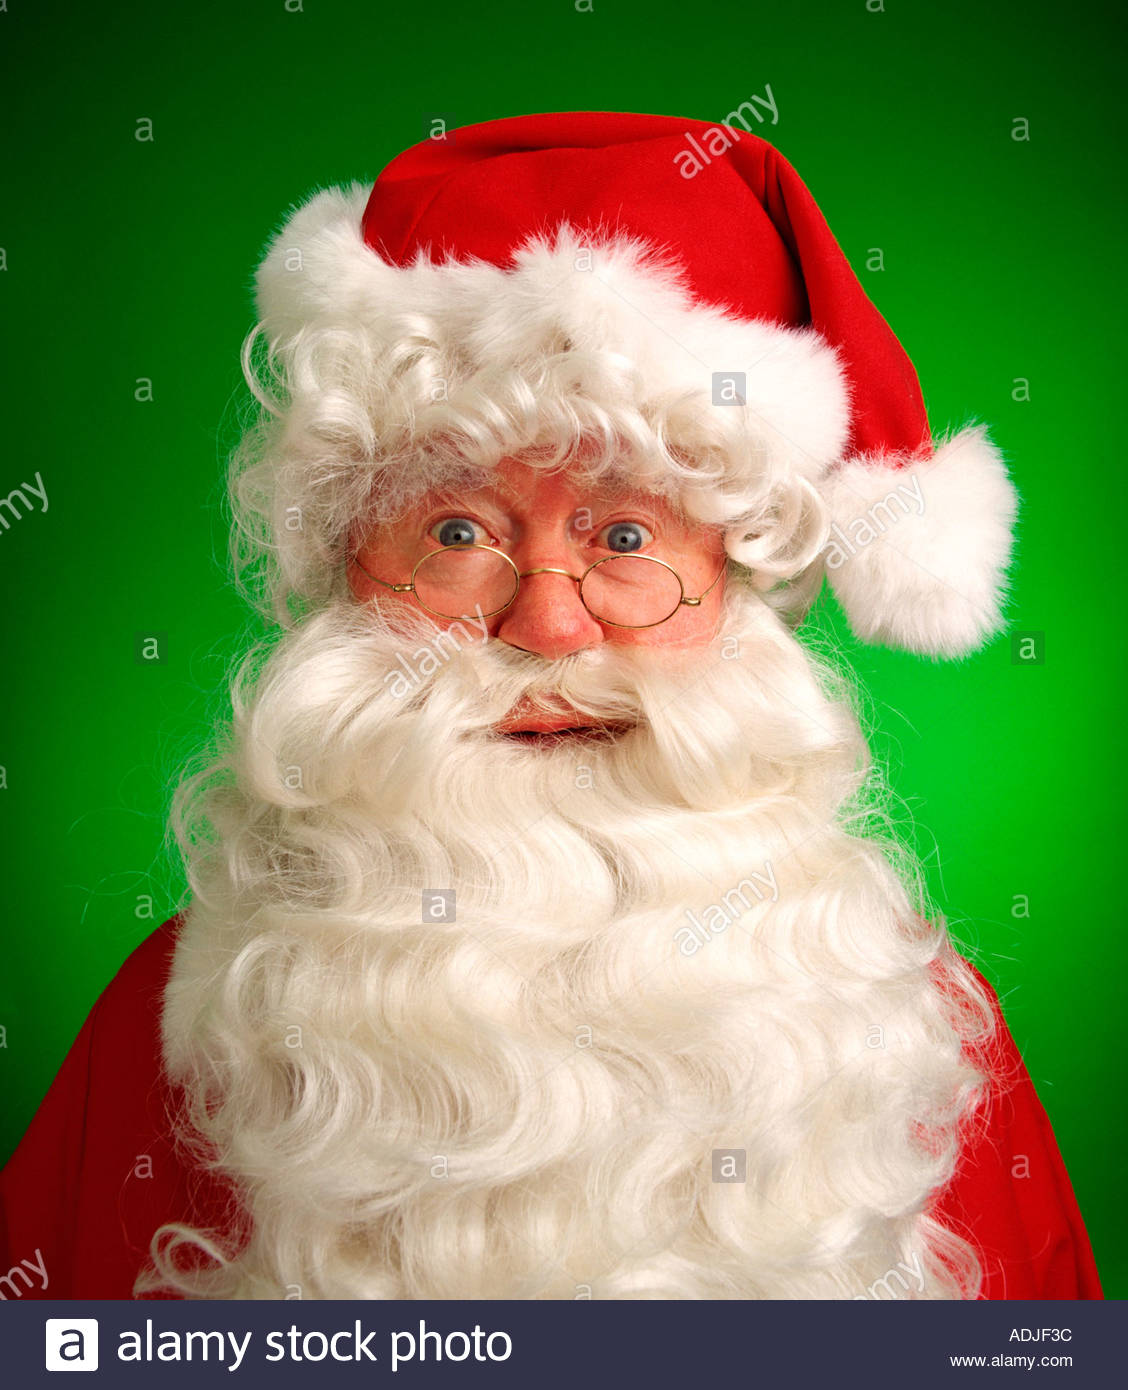 Smiling Santa Claus portrait with green background - Stock Image